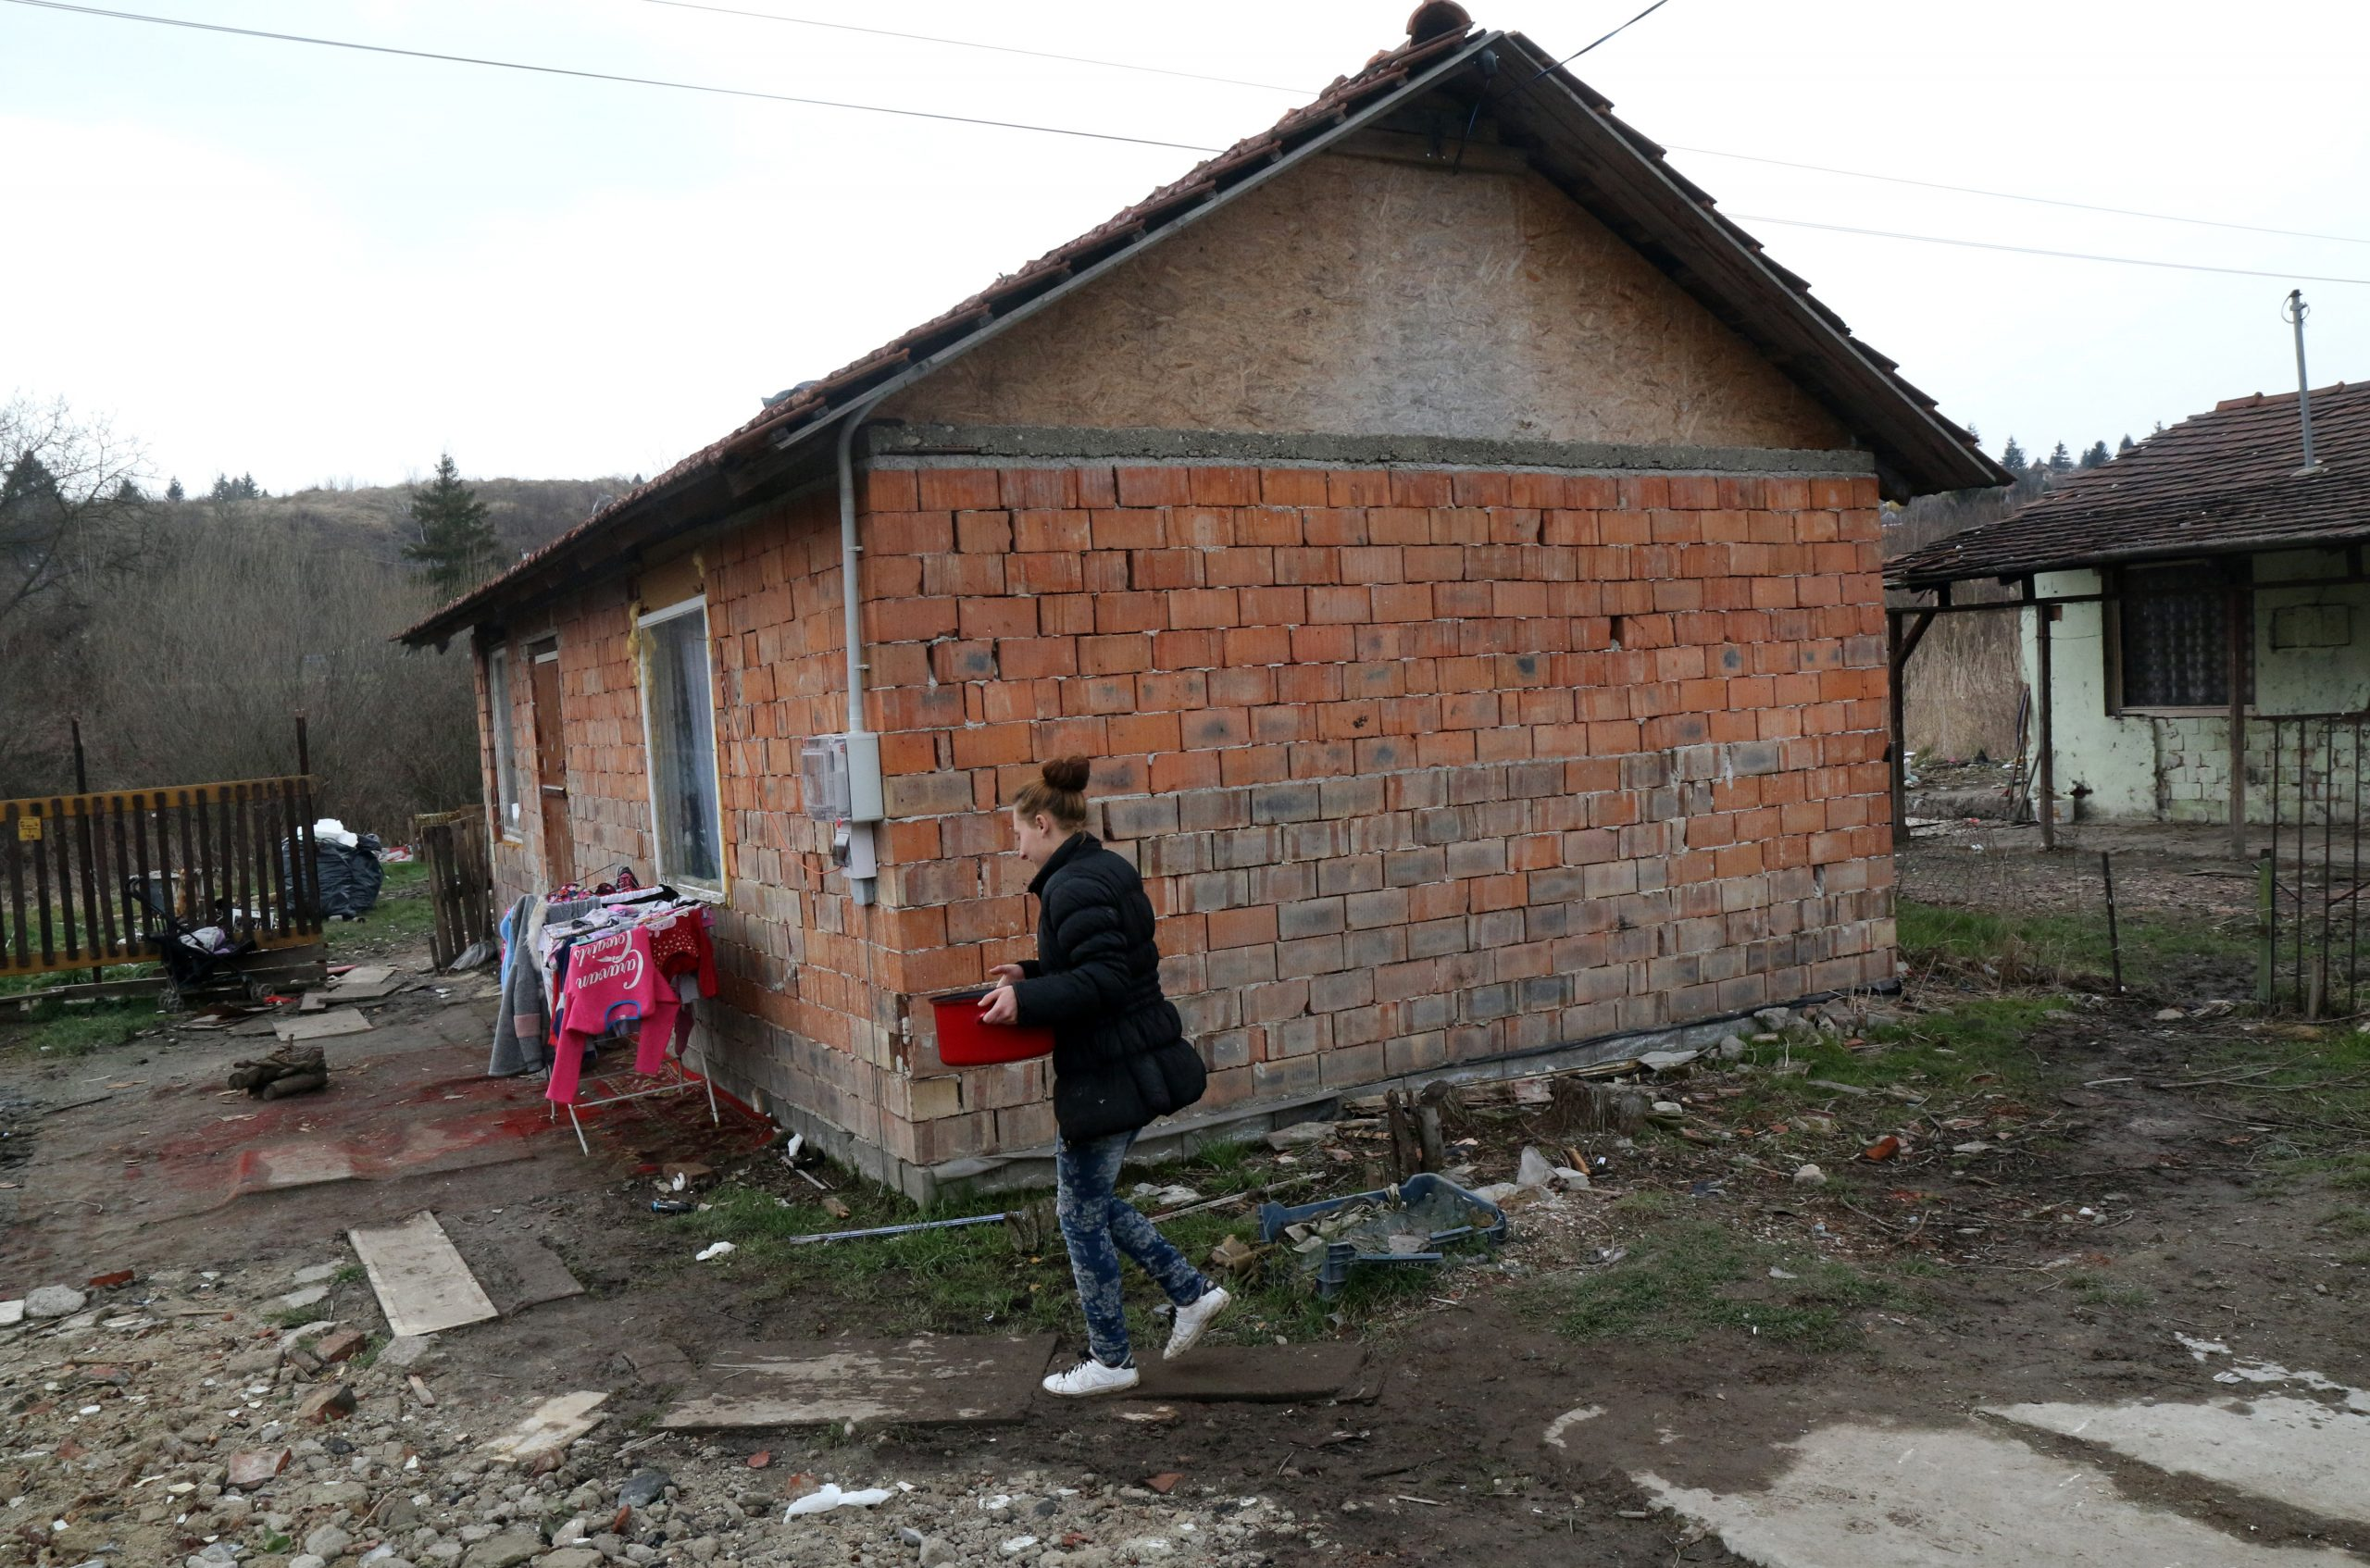 Council of Europe Calls on Hungary to Improve Roma Access to Education, Housing, Health Care